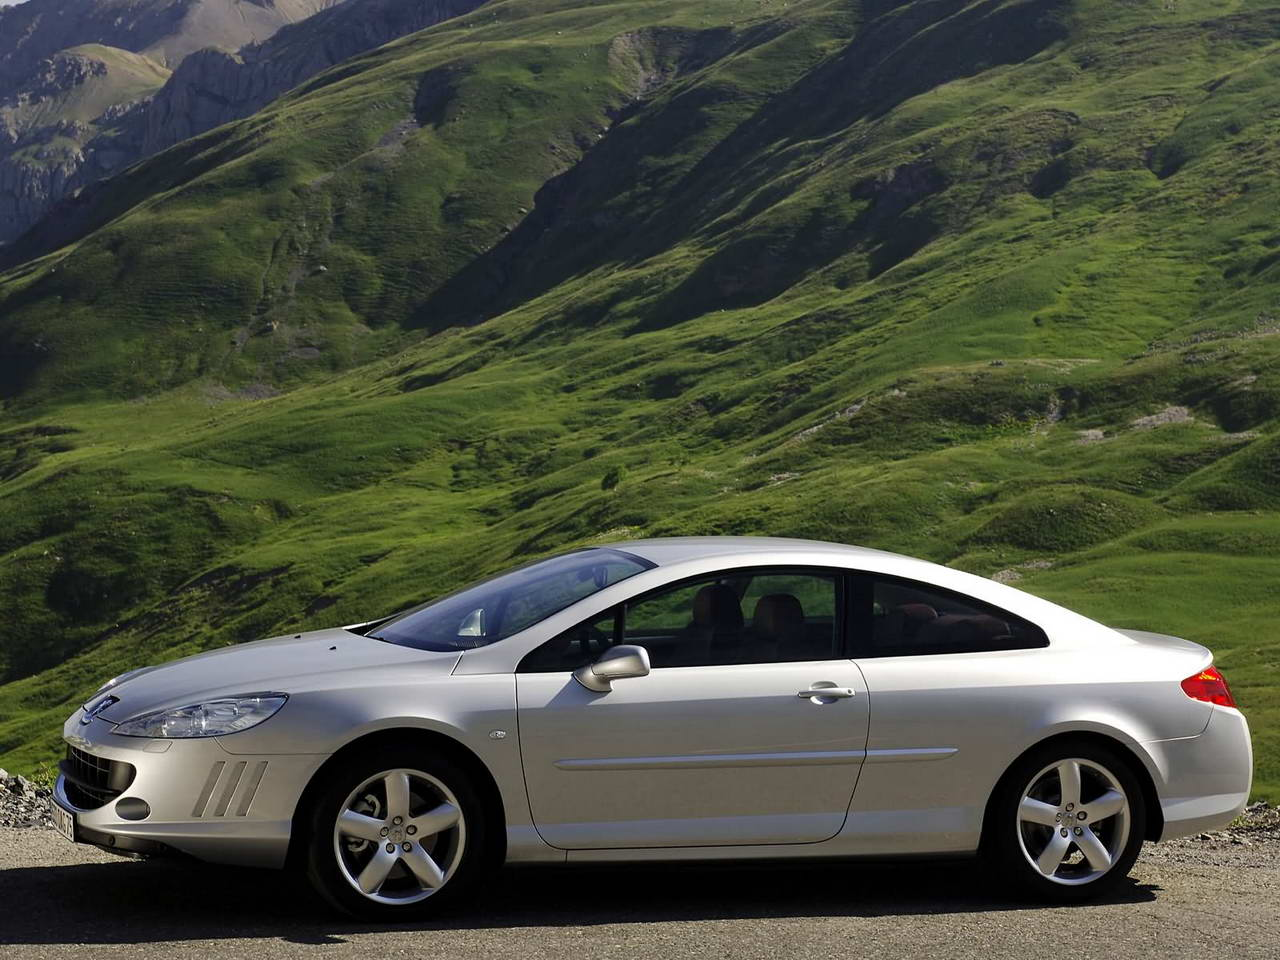 2006 peugeot 407 coupe review top speed. Black Bedroom Furniture Sets. Home Design Ideas